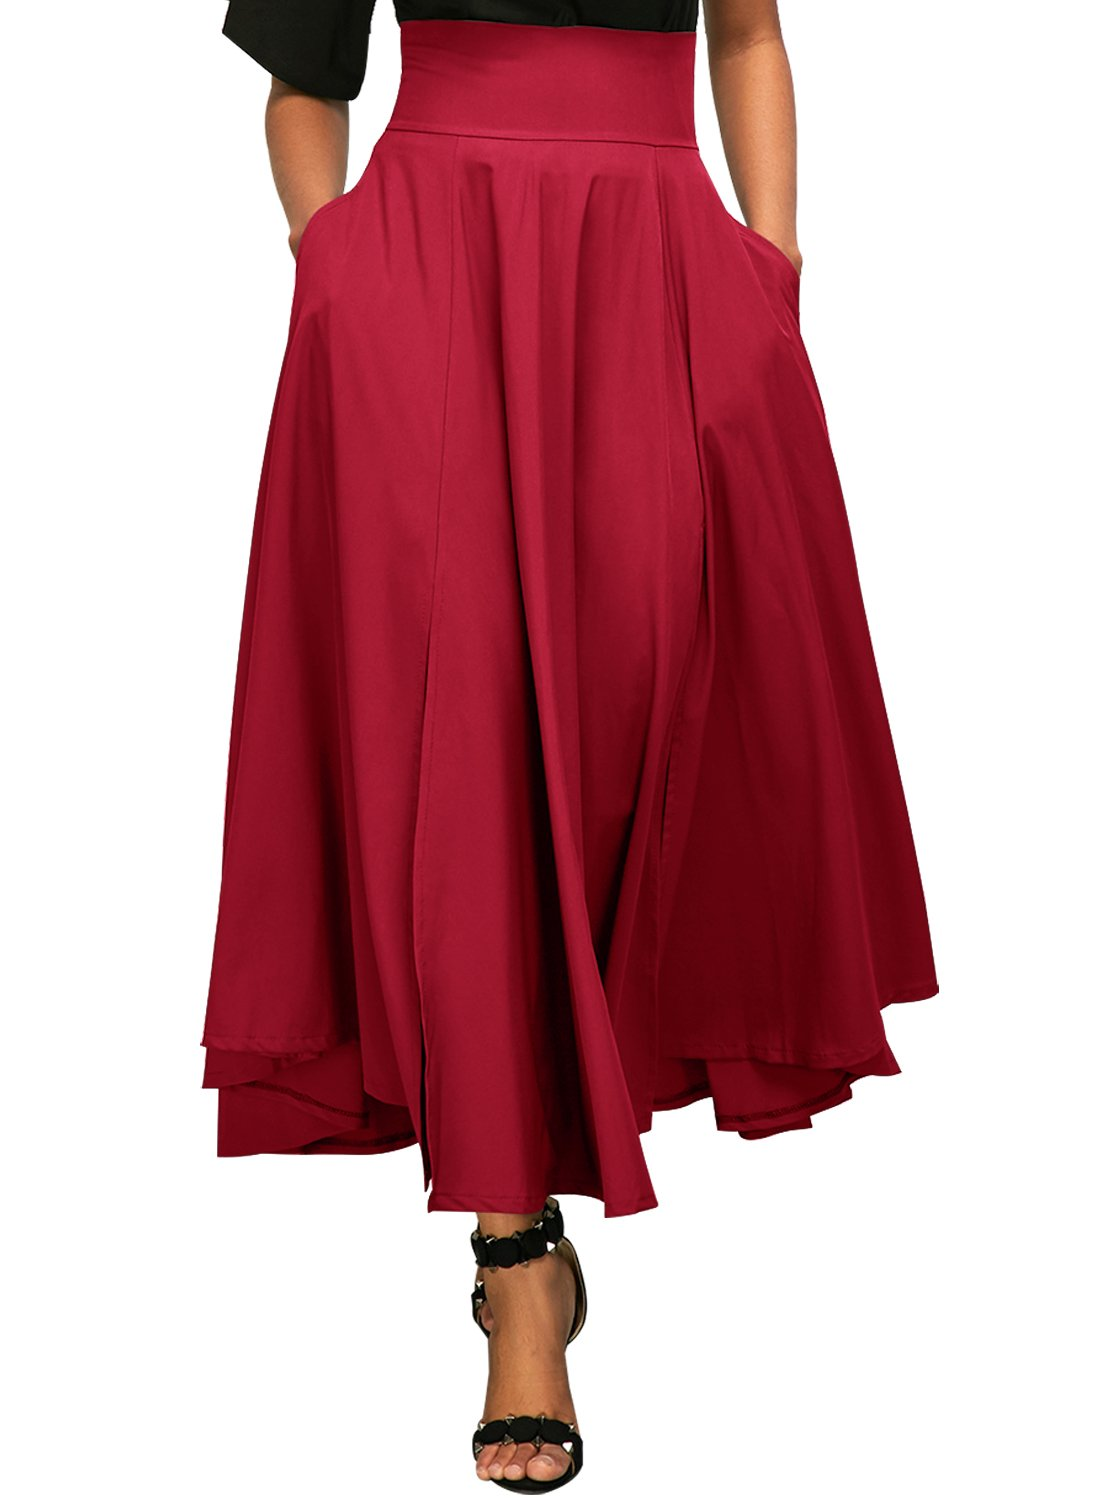 Lovezesent Women's High Waist A-Line Pleated Midi Skirt Dresses ZST65003